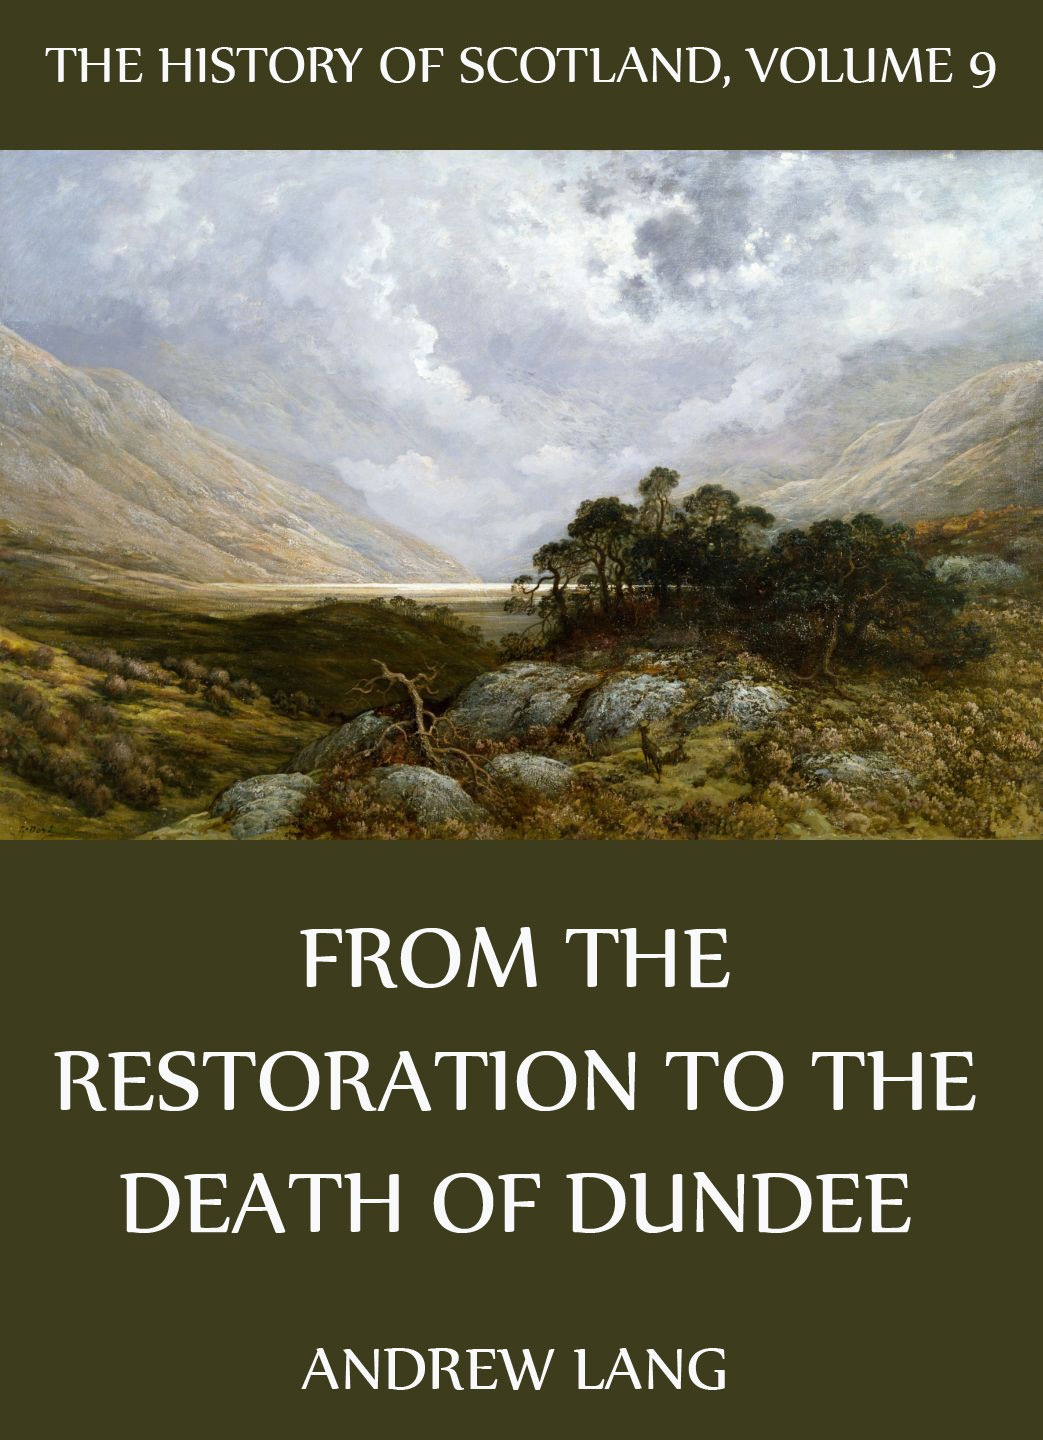 Andrew Lang The History Of Scotland - Volume 9: From The Restoration To The Death Of Dundee the bells of scotland road